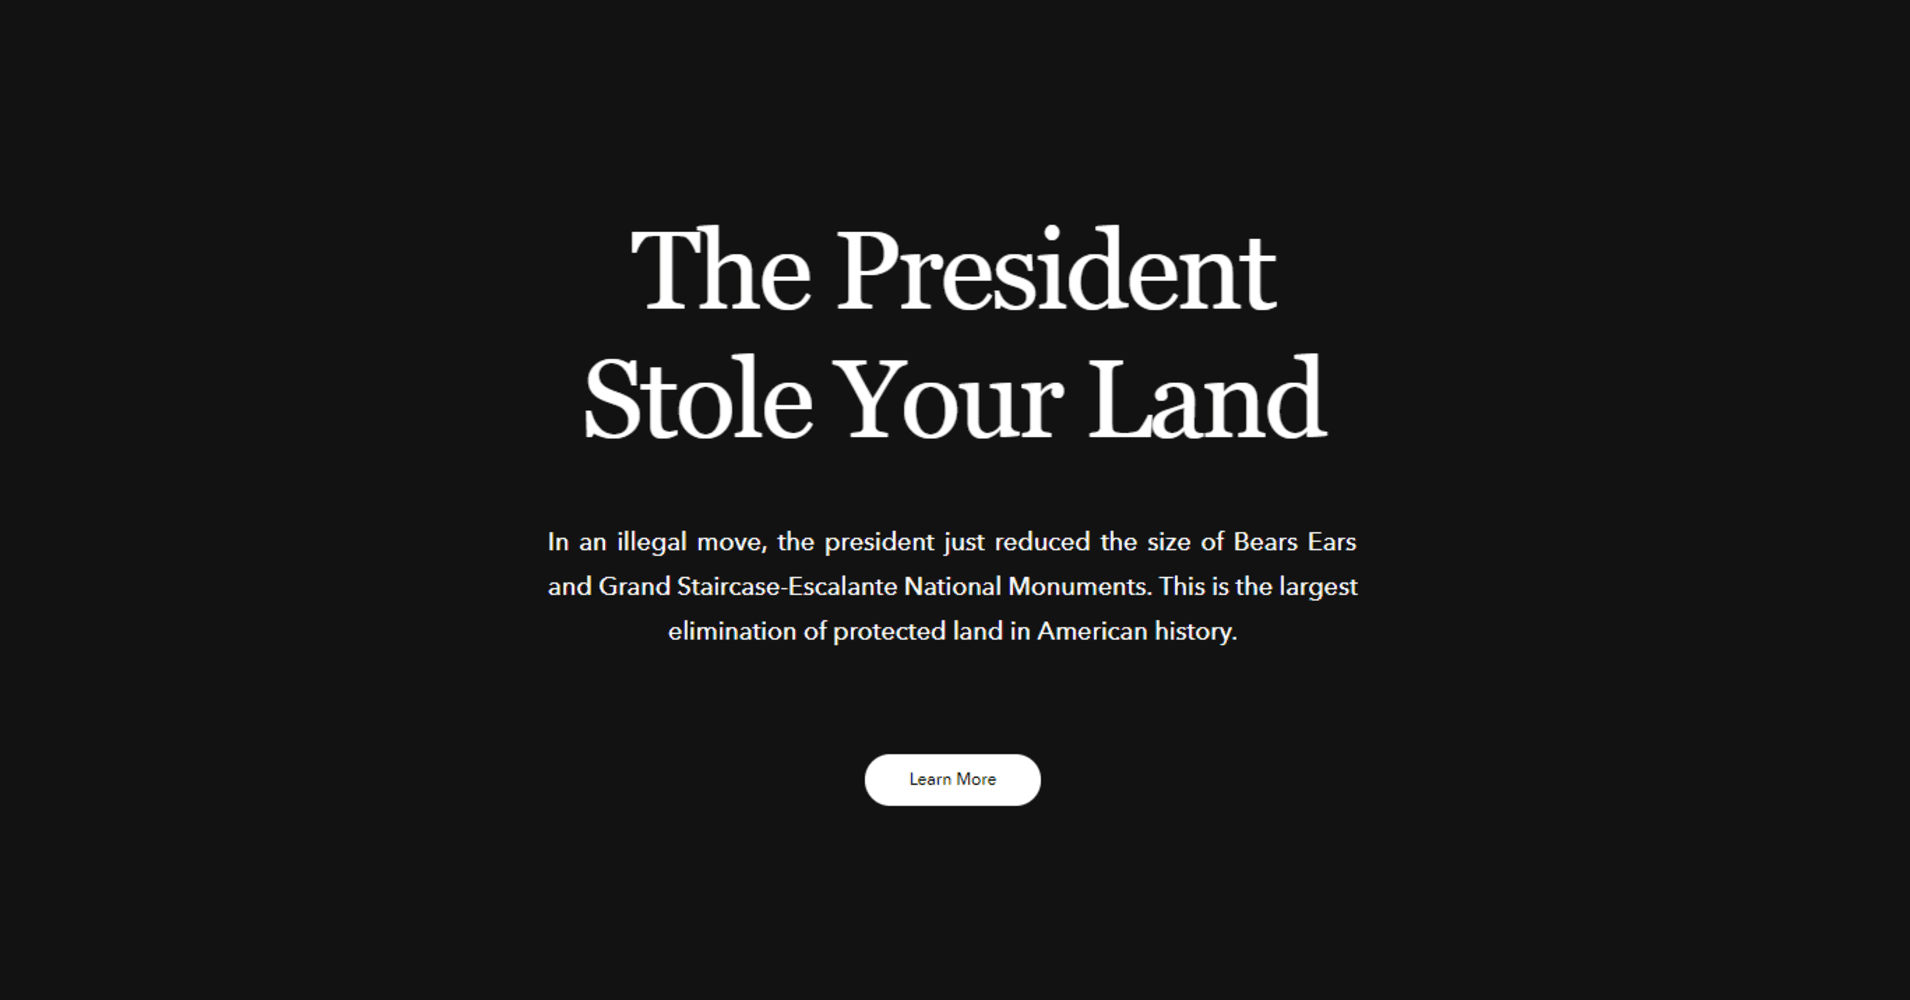 Patagonia displayed a message of protest on its website.